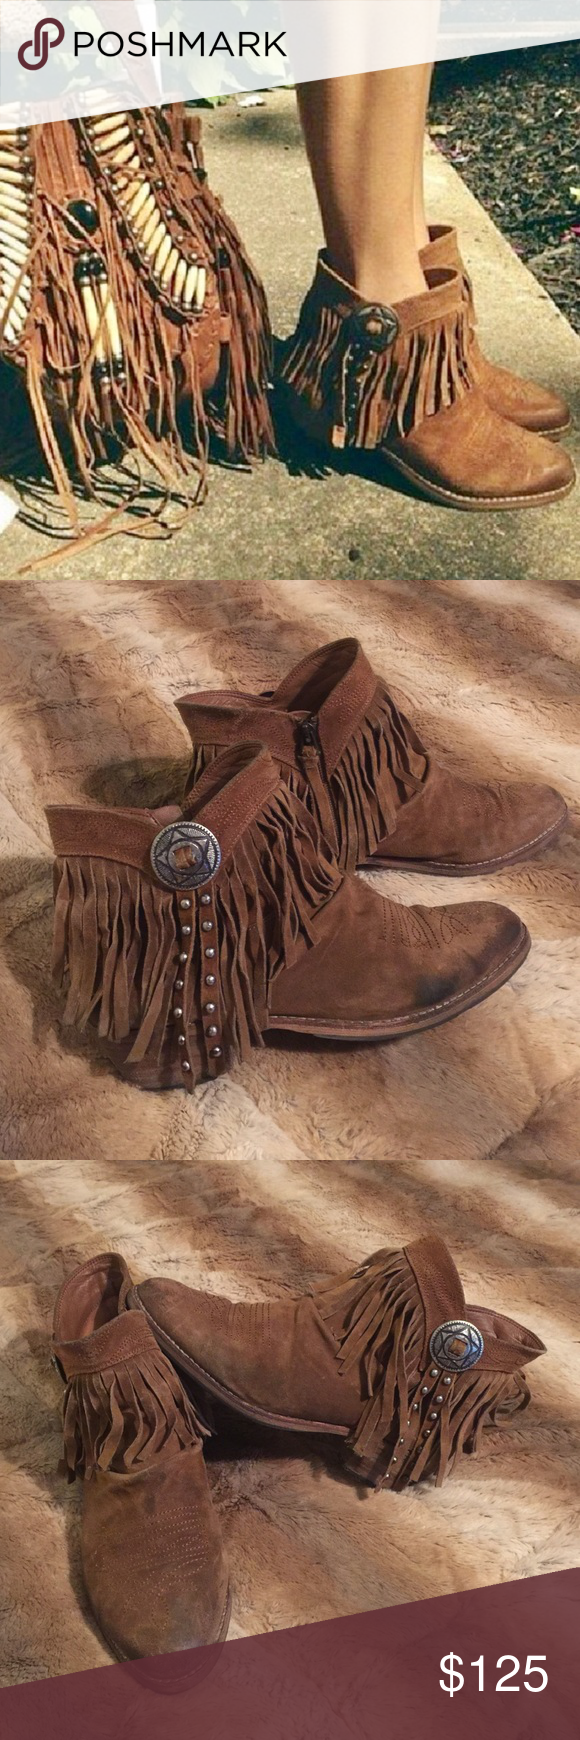 702260889a4d SAM EDELMAN Sidney Fringe Ankle Boots Booties 10 Sam Edelman  Sidney   distressed whiskey brown